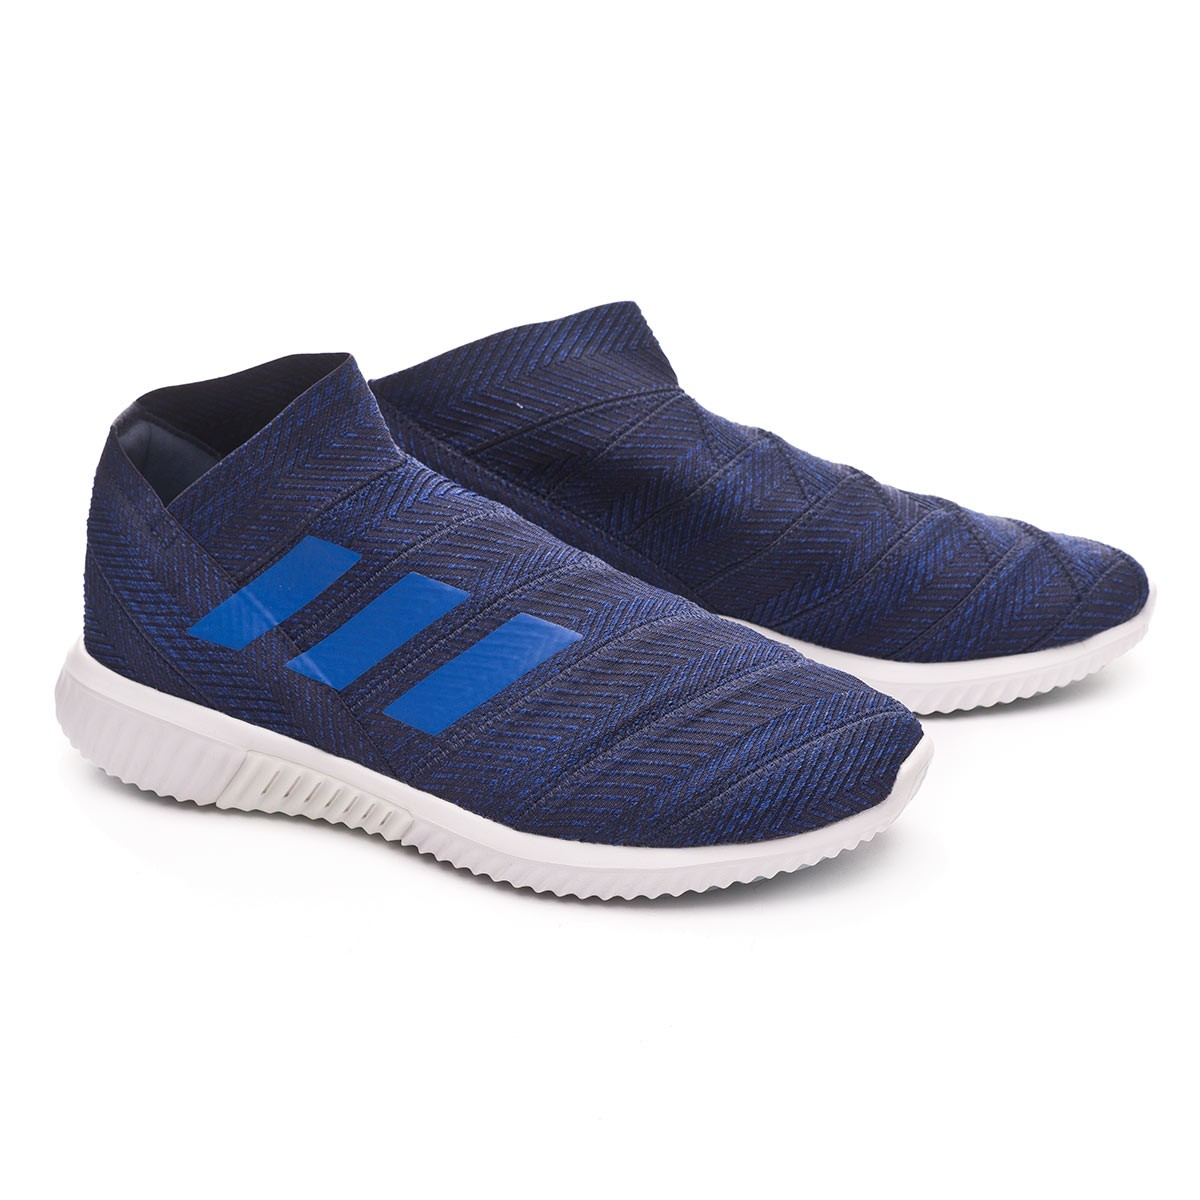 transacción gritar Flexible  Trainers adidas Nemeziz Tango 18.1 TR Dark blue-Bold blue-White - Football  store Fútbol Emotion